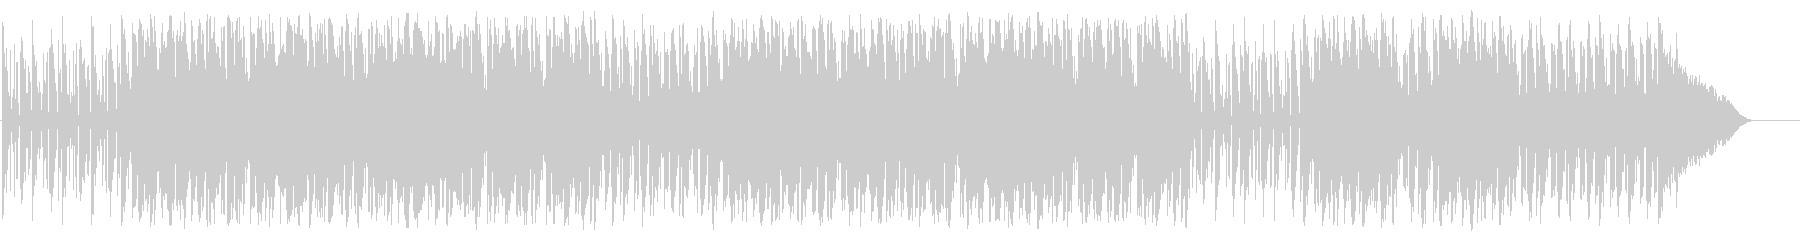 A bright and fun song's unreproduced waveform